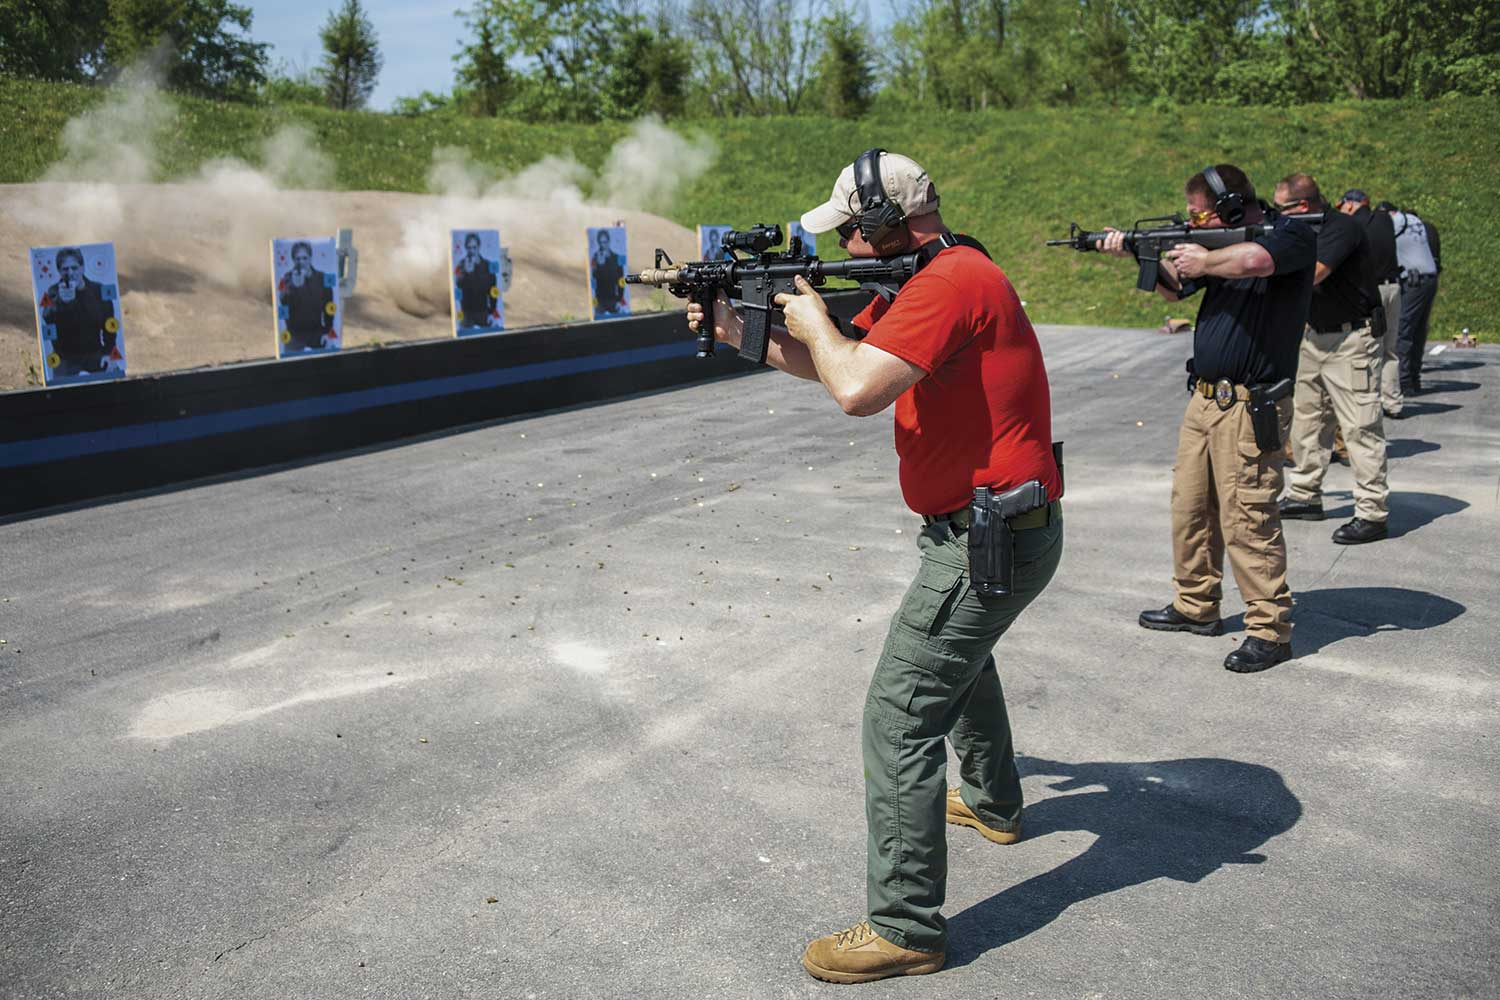 Officer Rodney Johnson fires his rifle during a recent training at the GPD firearms training facility. GPD Detective Steve Hess, who is assigned to the agency's training unit as a firearms instructor, said GPD officers regularly visit the range for both practice and qualifications. (Photo by Jim Robertson)